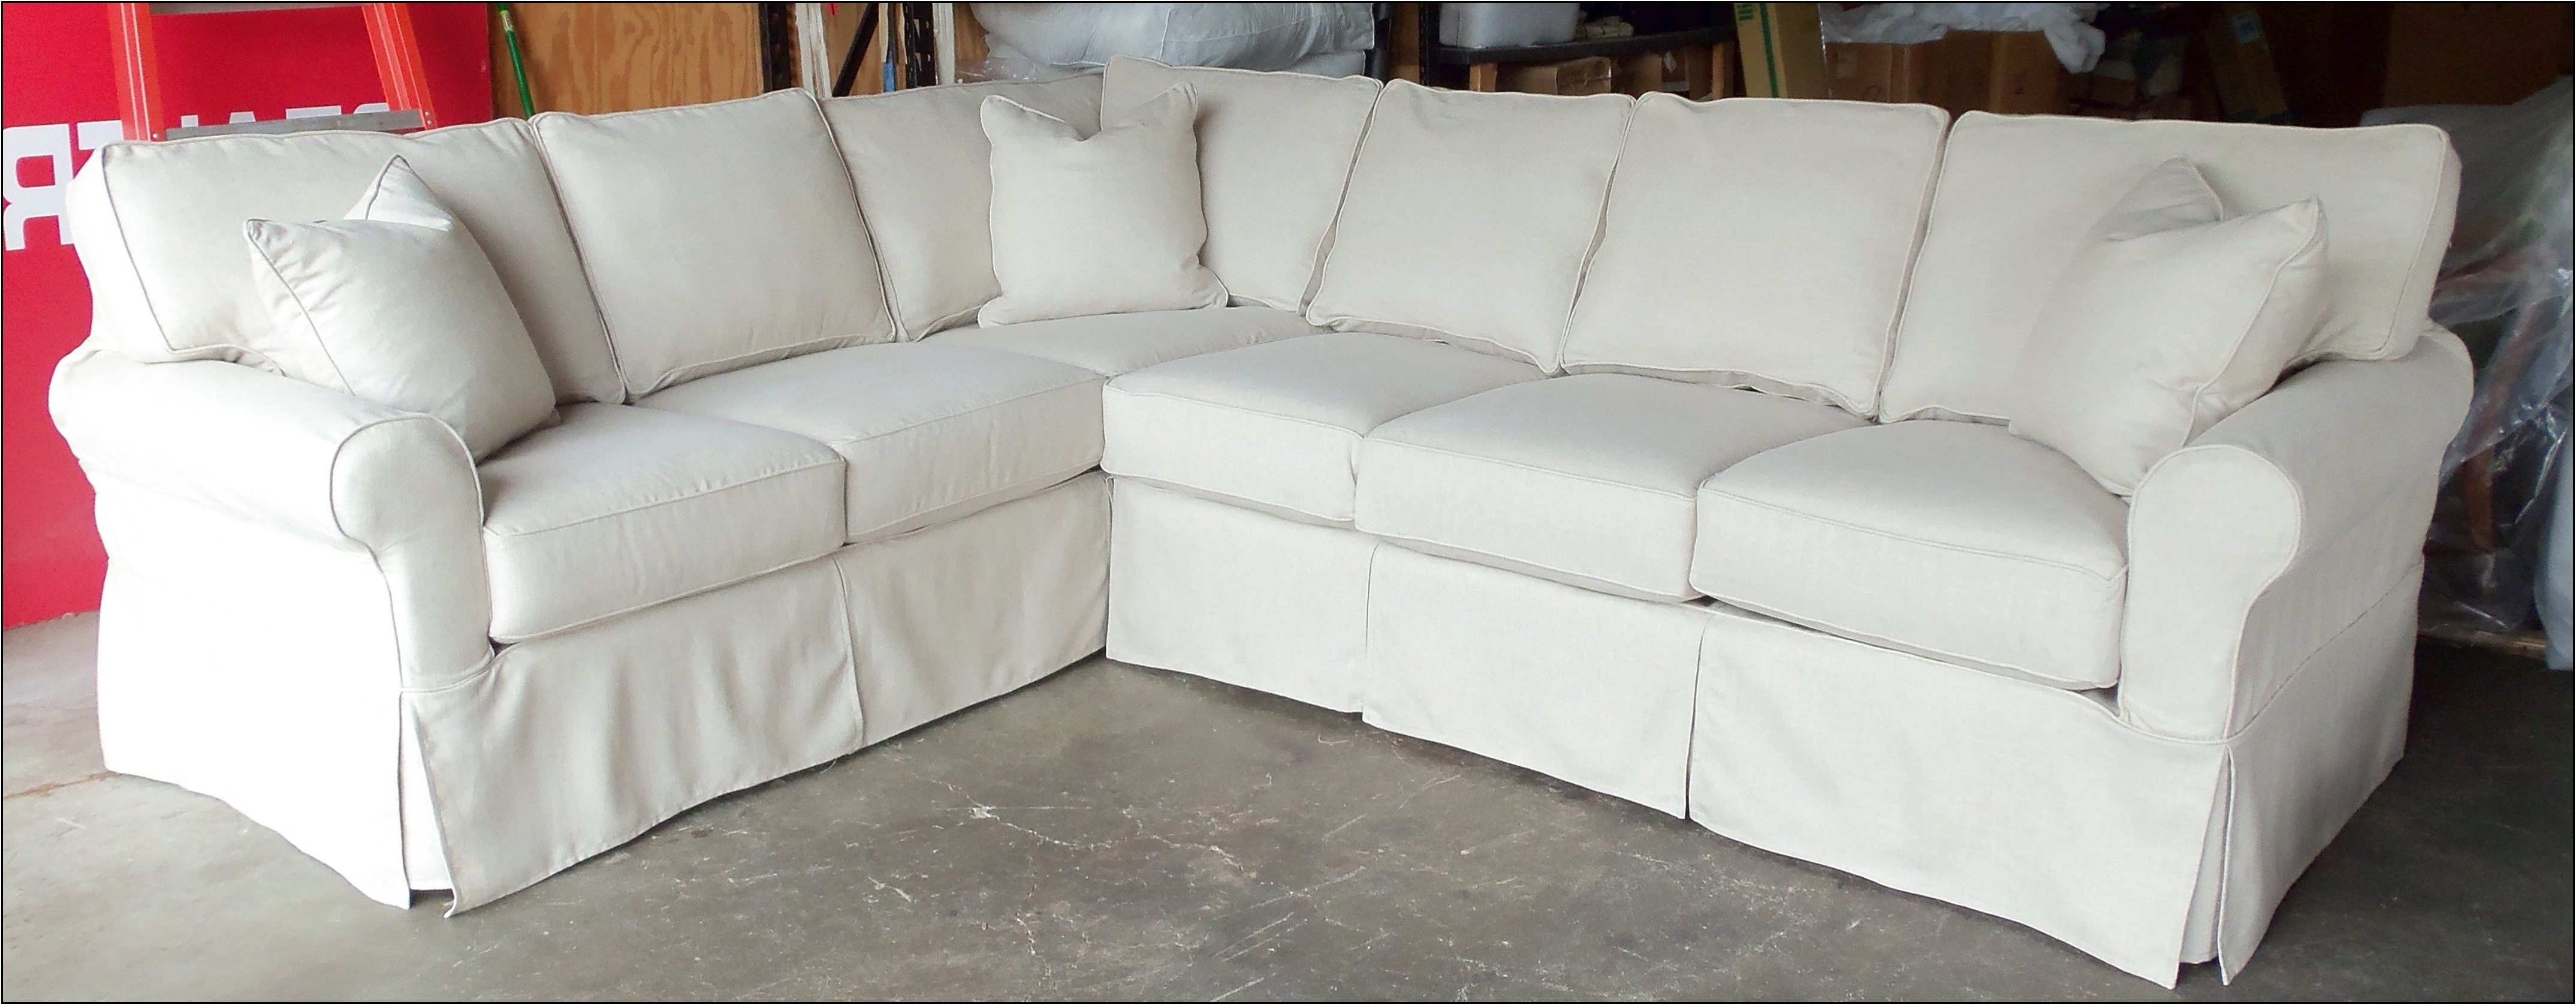 Removable Covers Sectional Sofas In Well Liked Cool Sectional Couch Cover , Best Sectional Couch Cover 72 For (View 6 of 15)